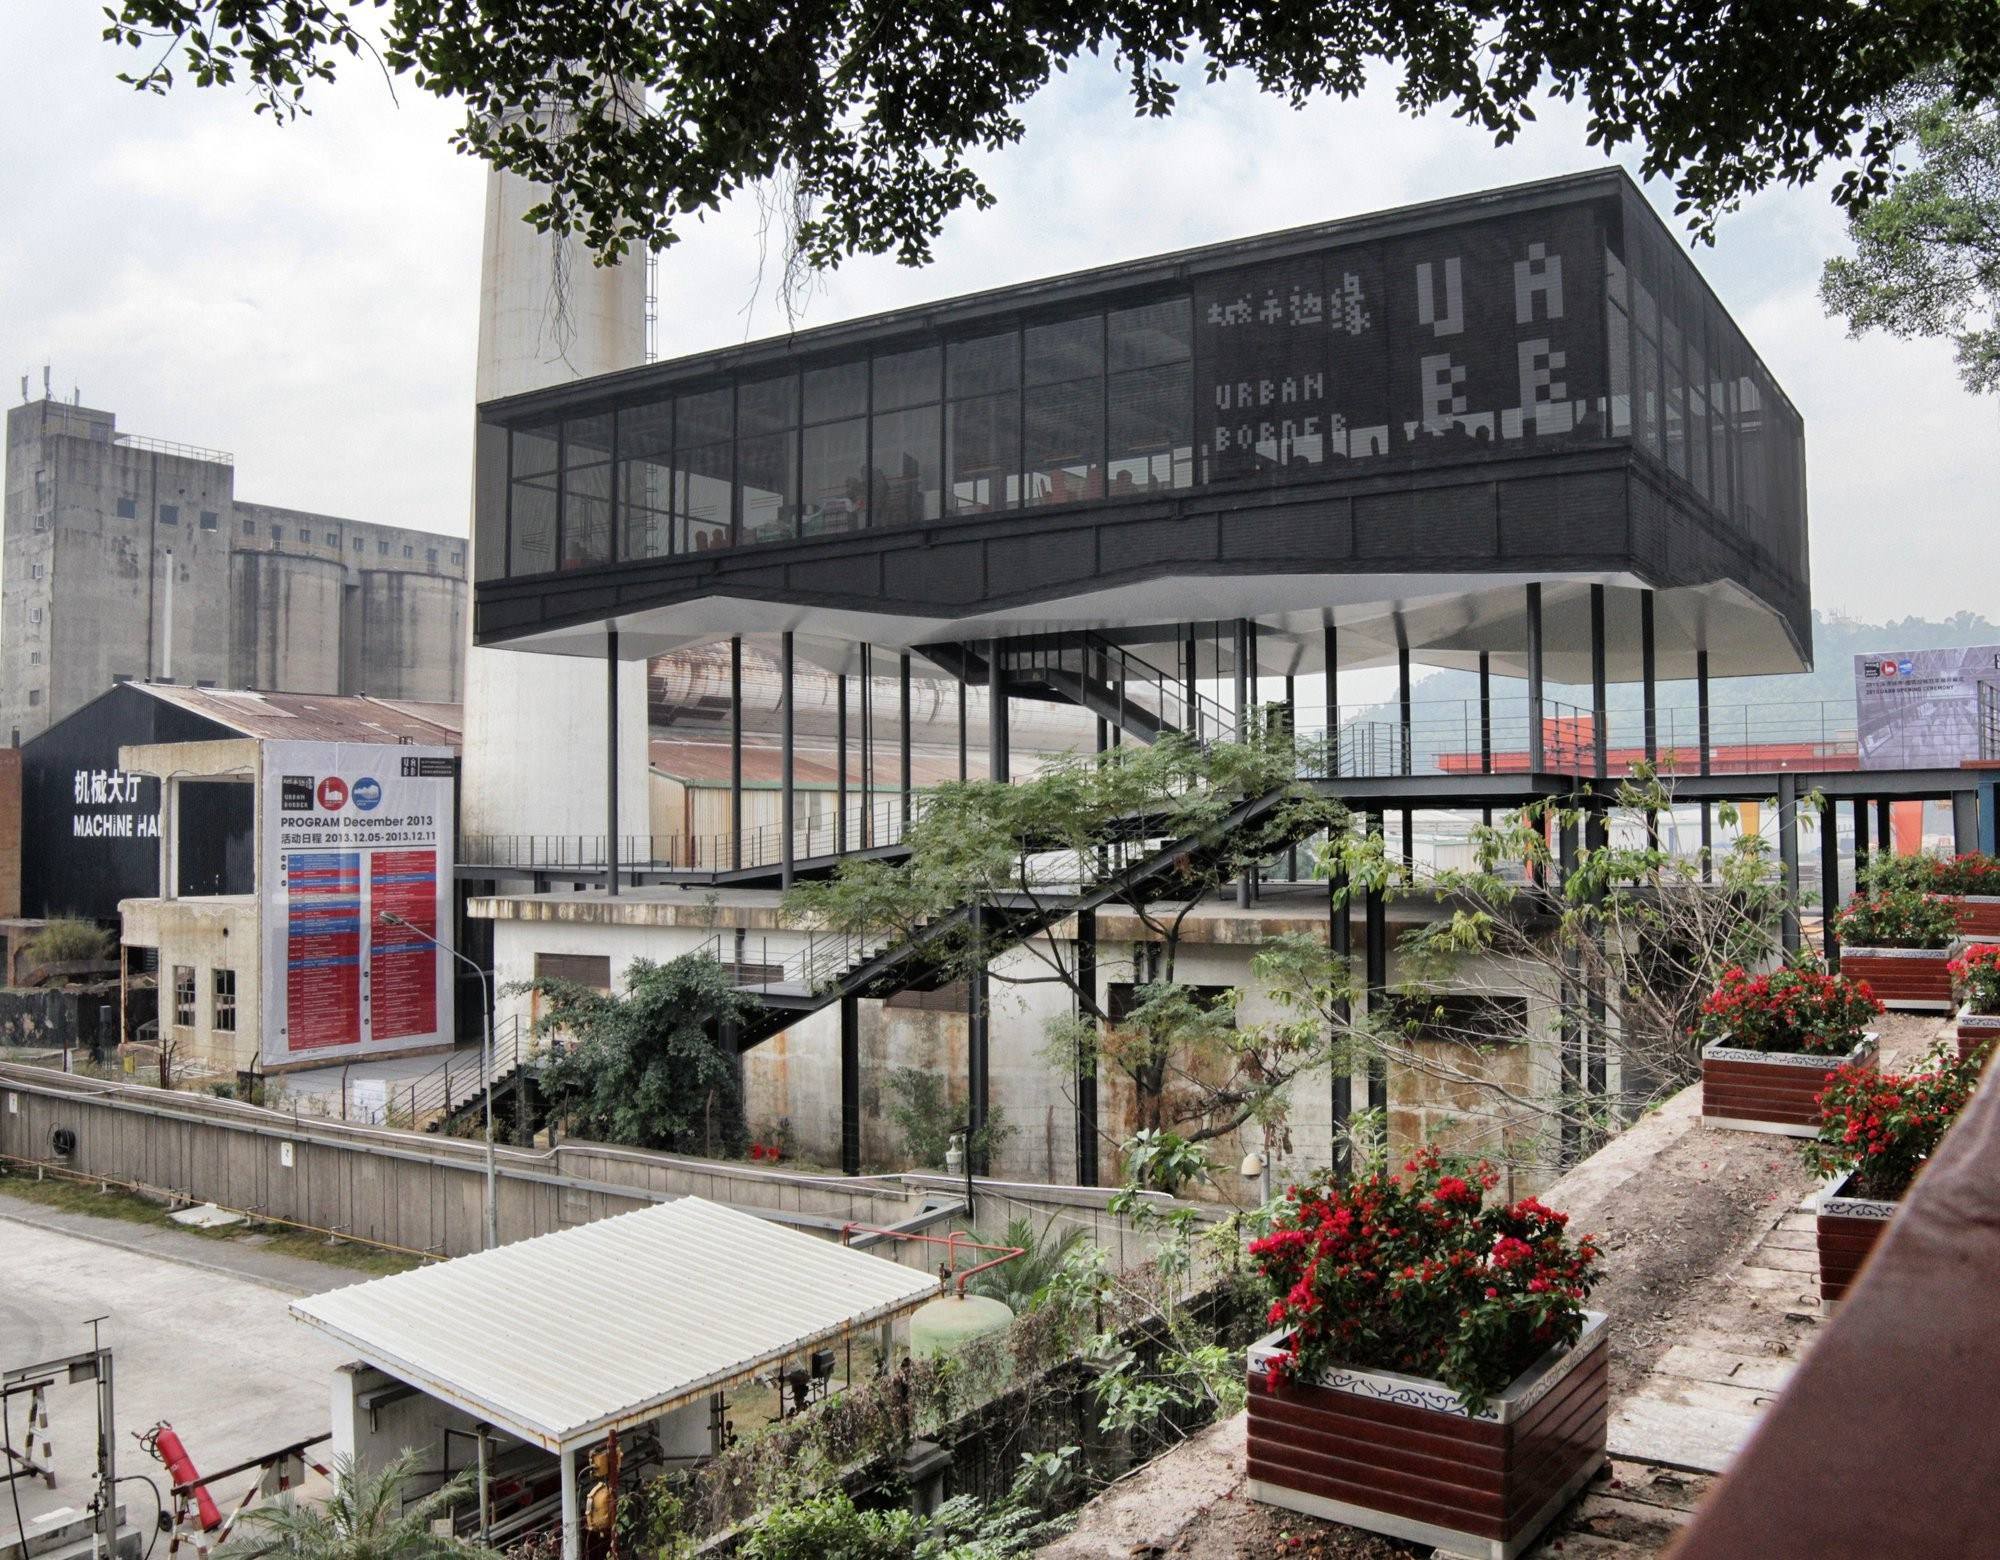 Call for Exhibitors: 2015 Bi-City Biennale of Urbanism Architecture in Hong Kong and Shenzhen, 2013 UABB entrance pavilion at the Value Factory. Image © ArchDaily